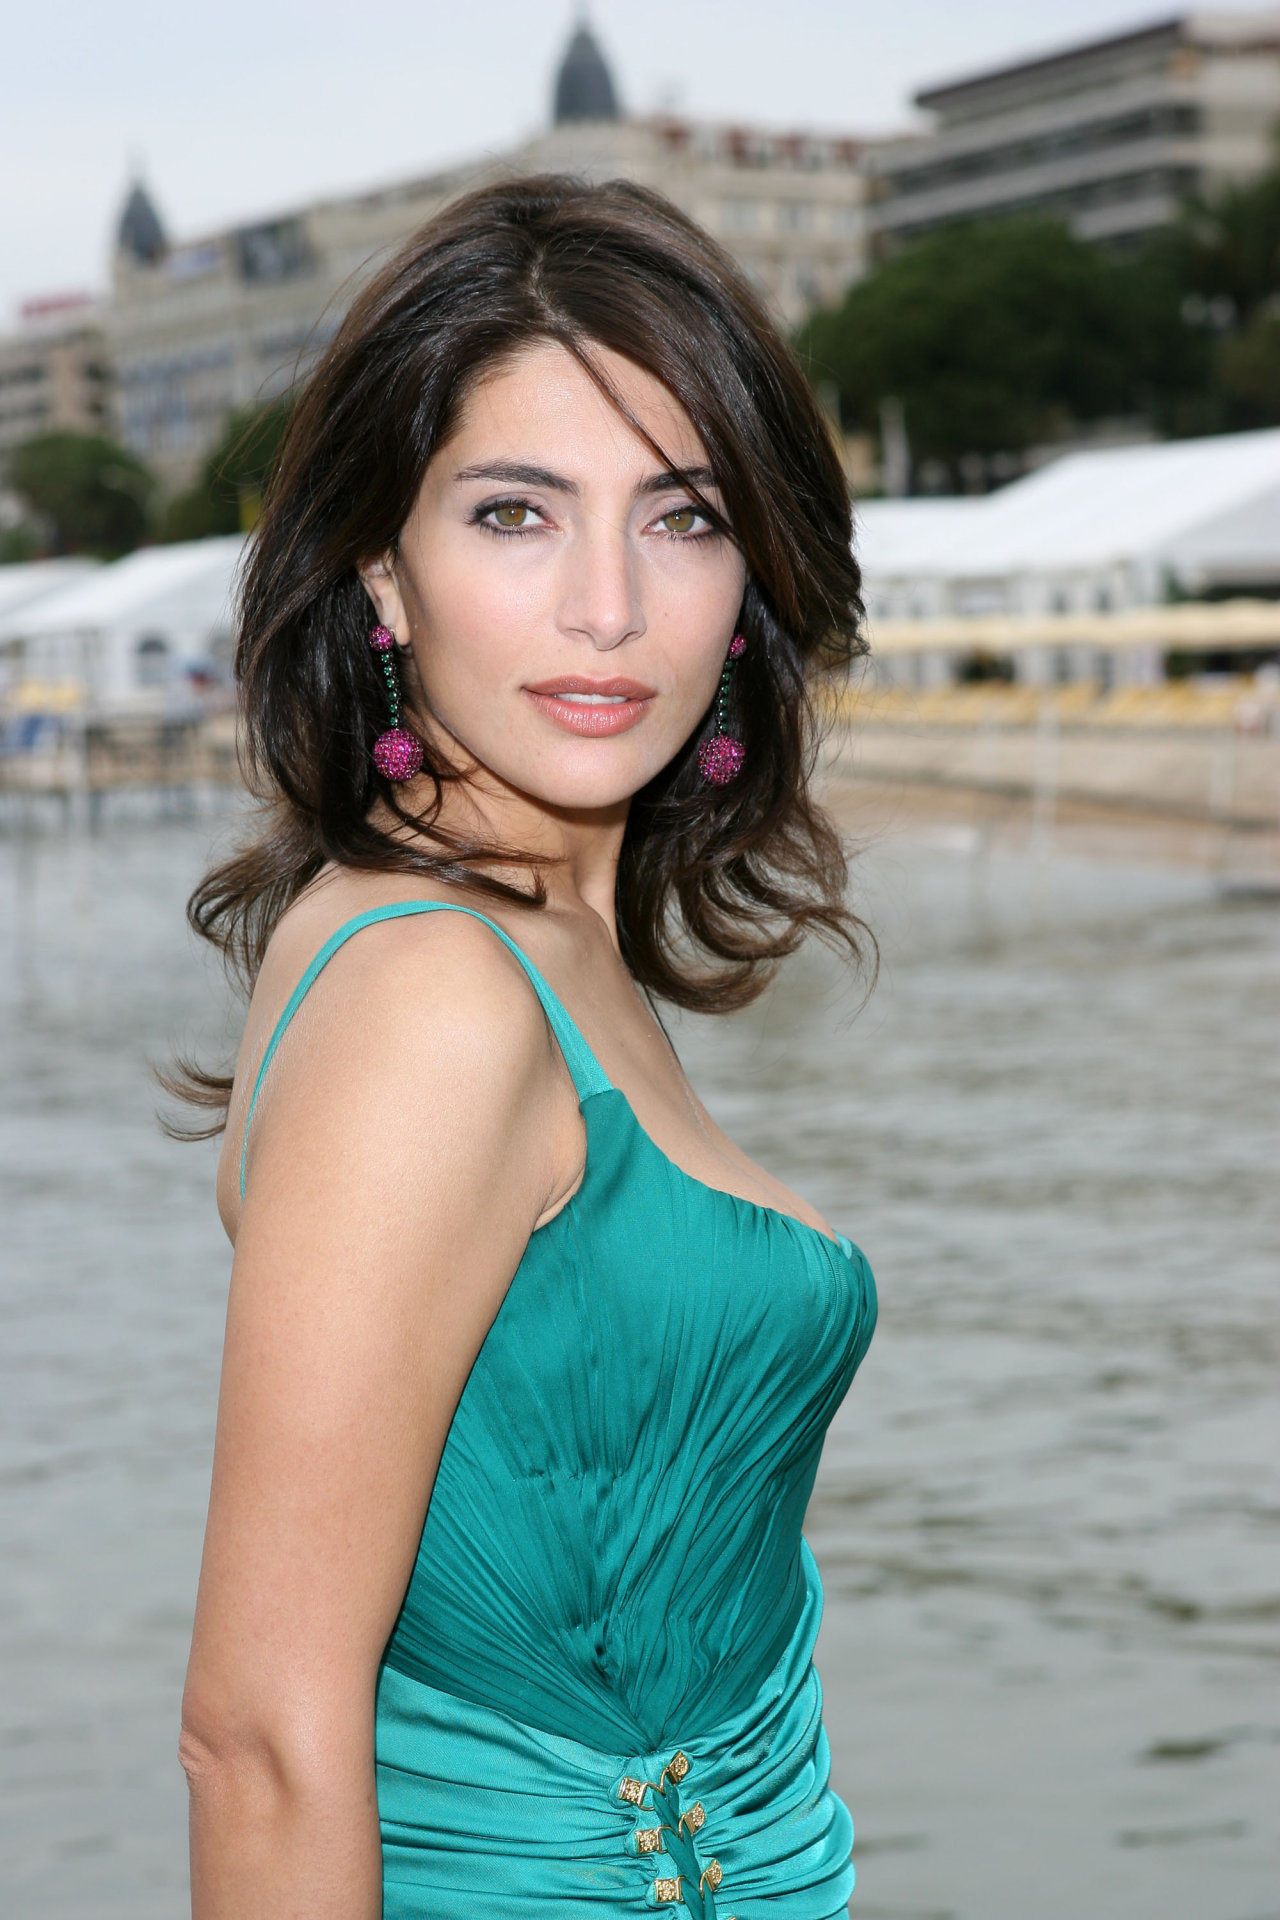 HQ Caterina Murino Wallpapers | File 369.91Kb